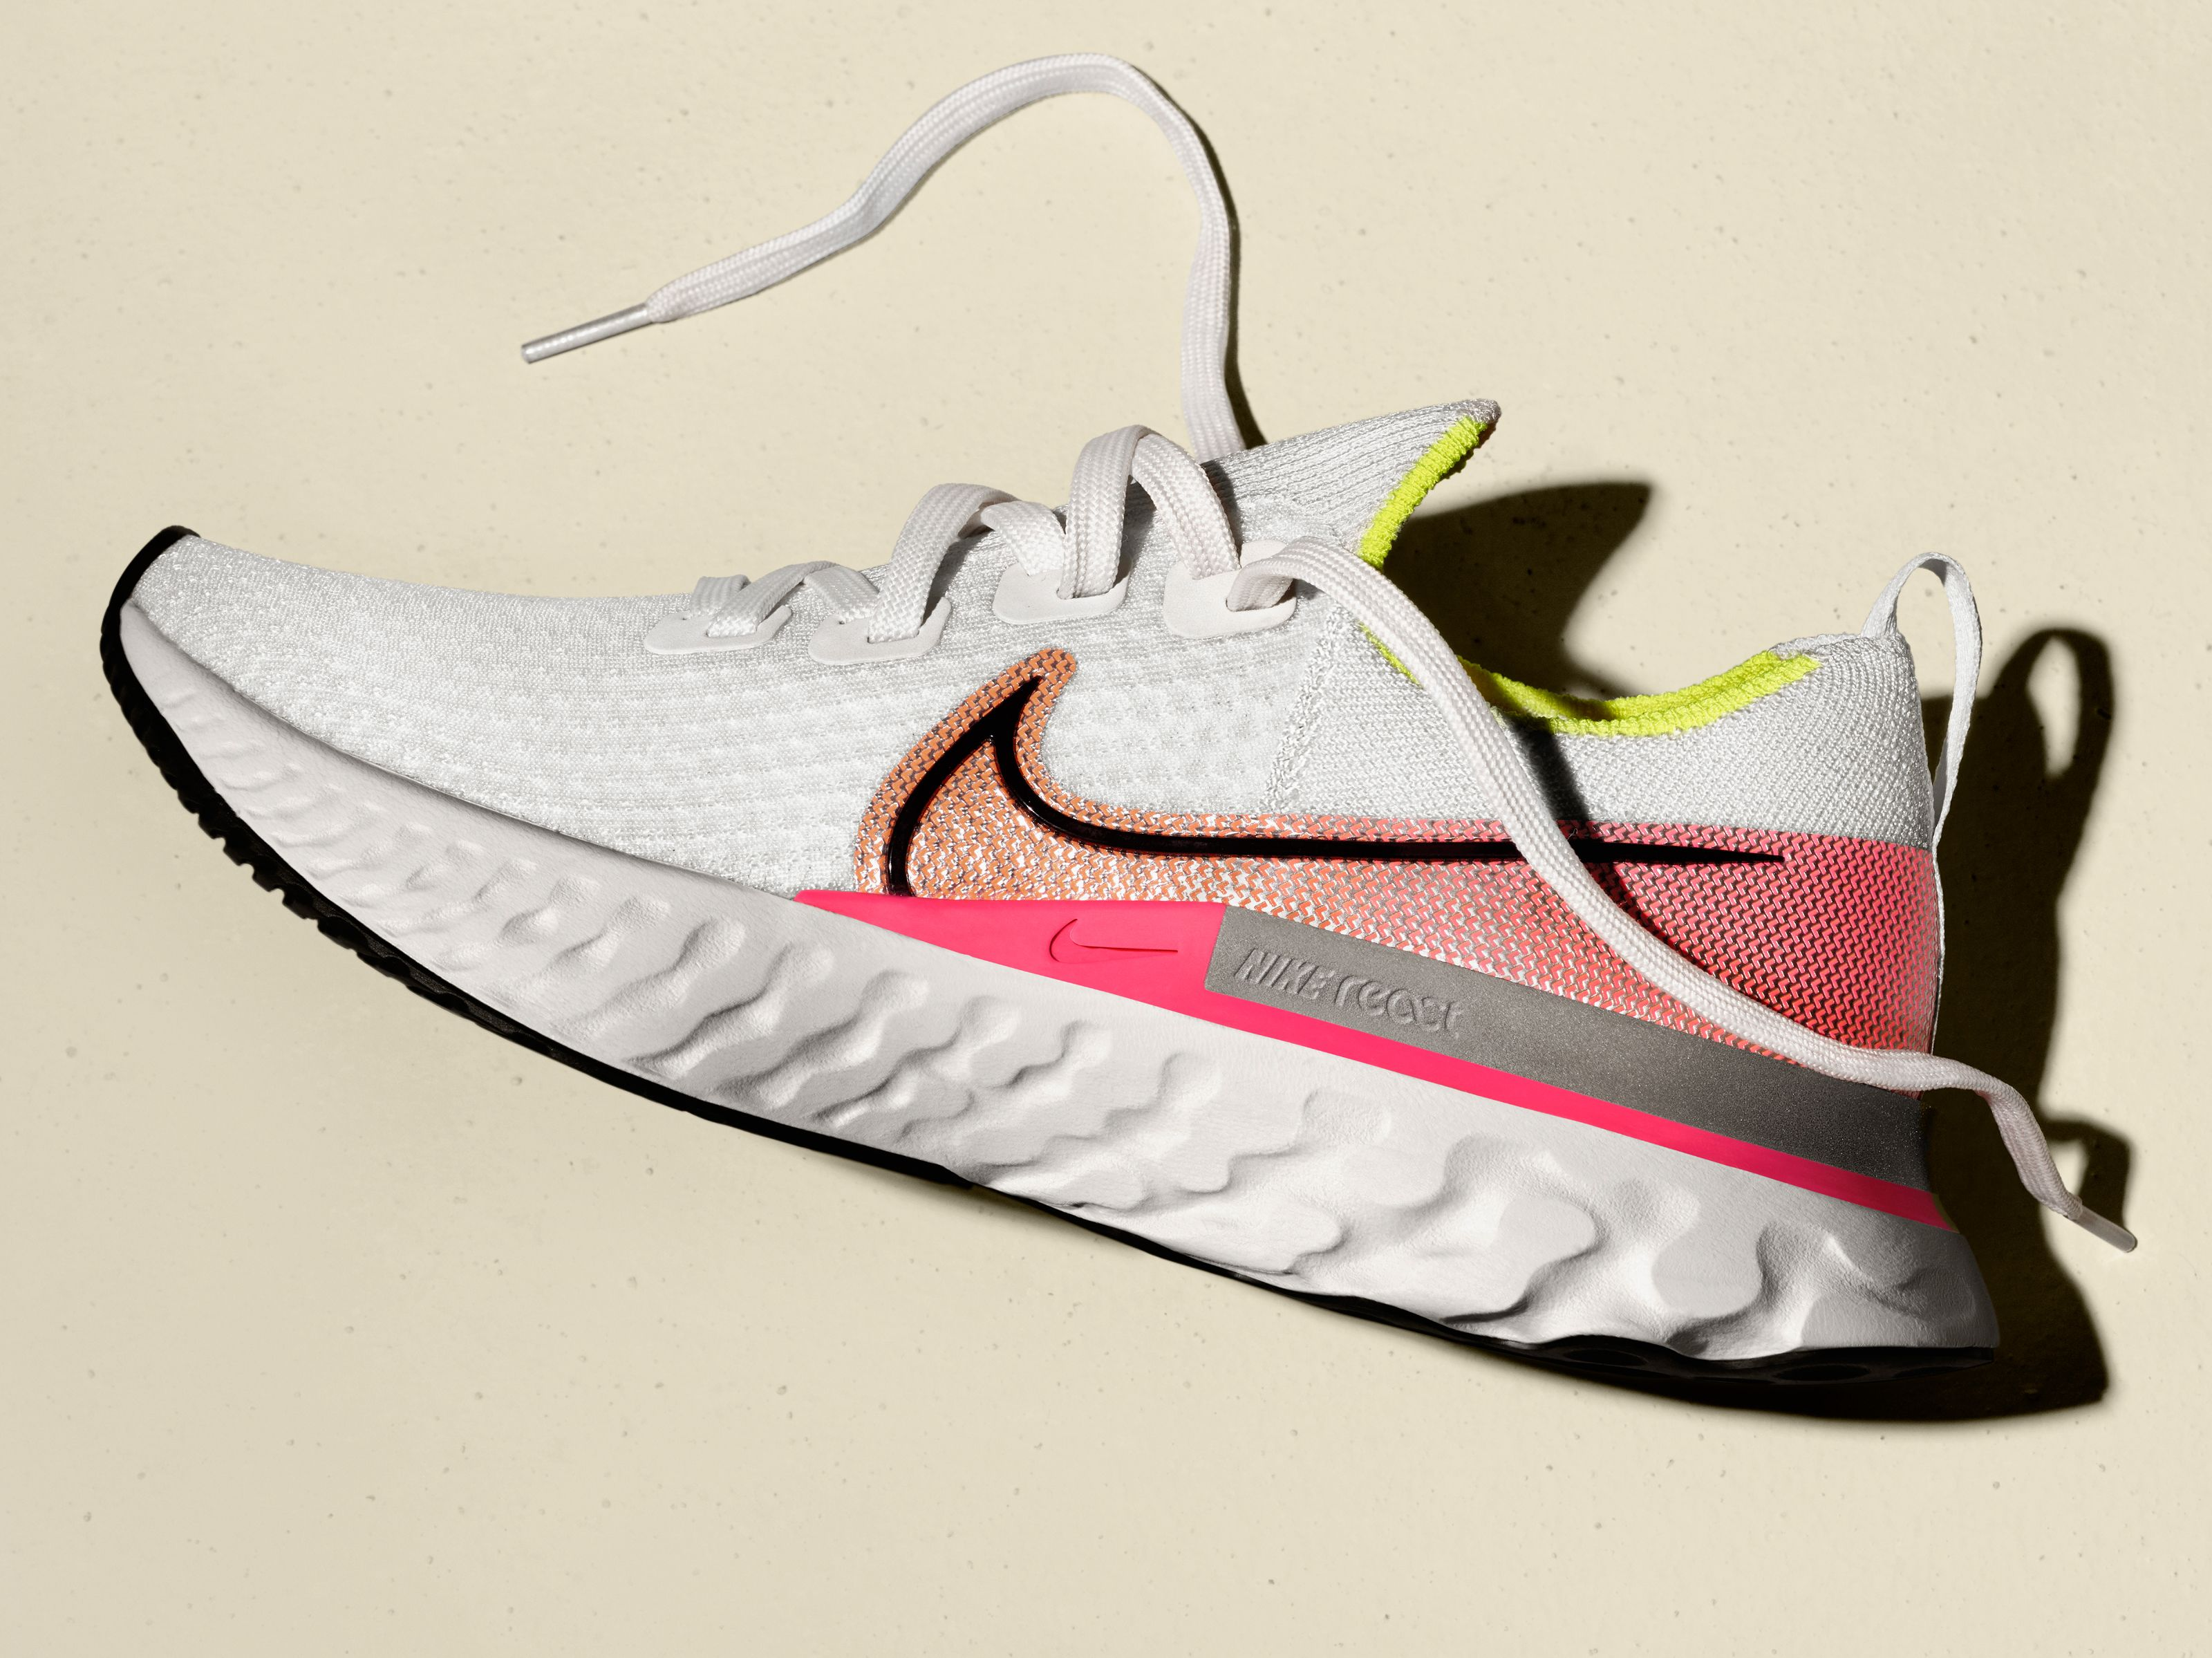 Nike React Infinity Run Review – Shoes For Injury Prevention